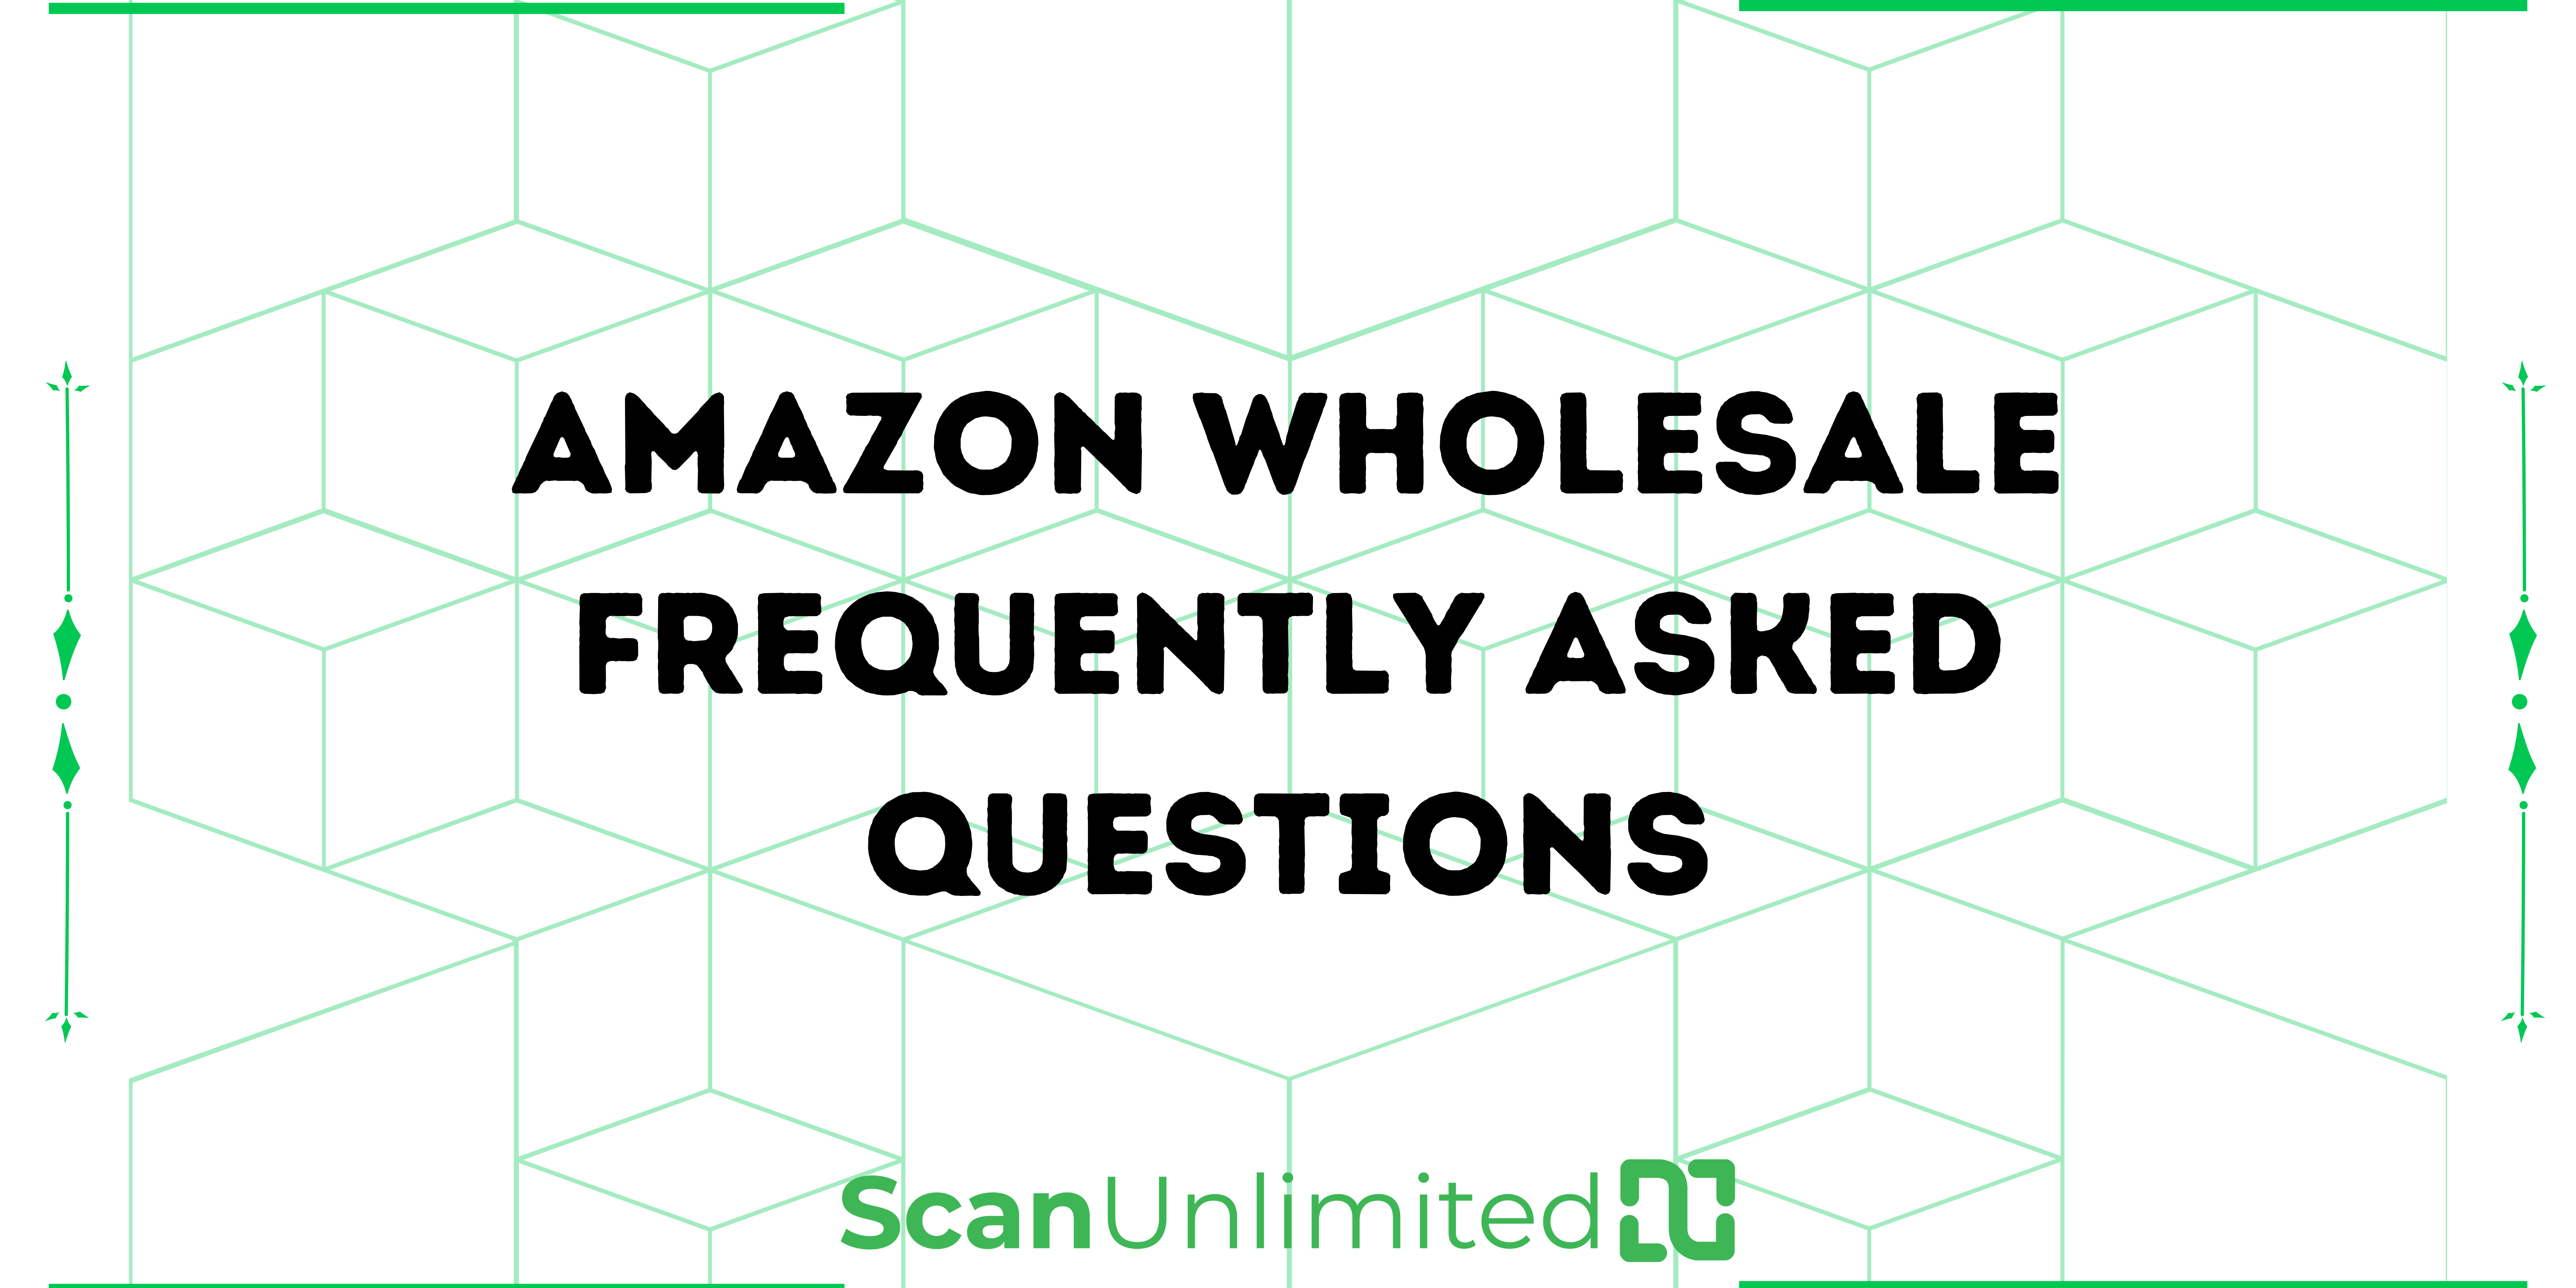 Planning to Start an Amazon Wholesale Business? These are 5